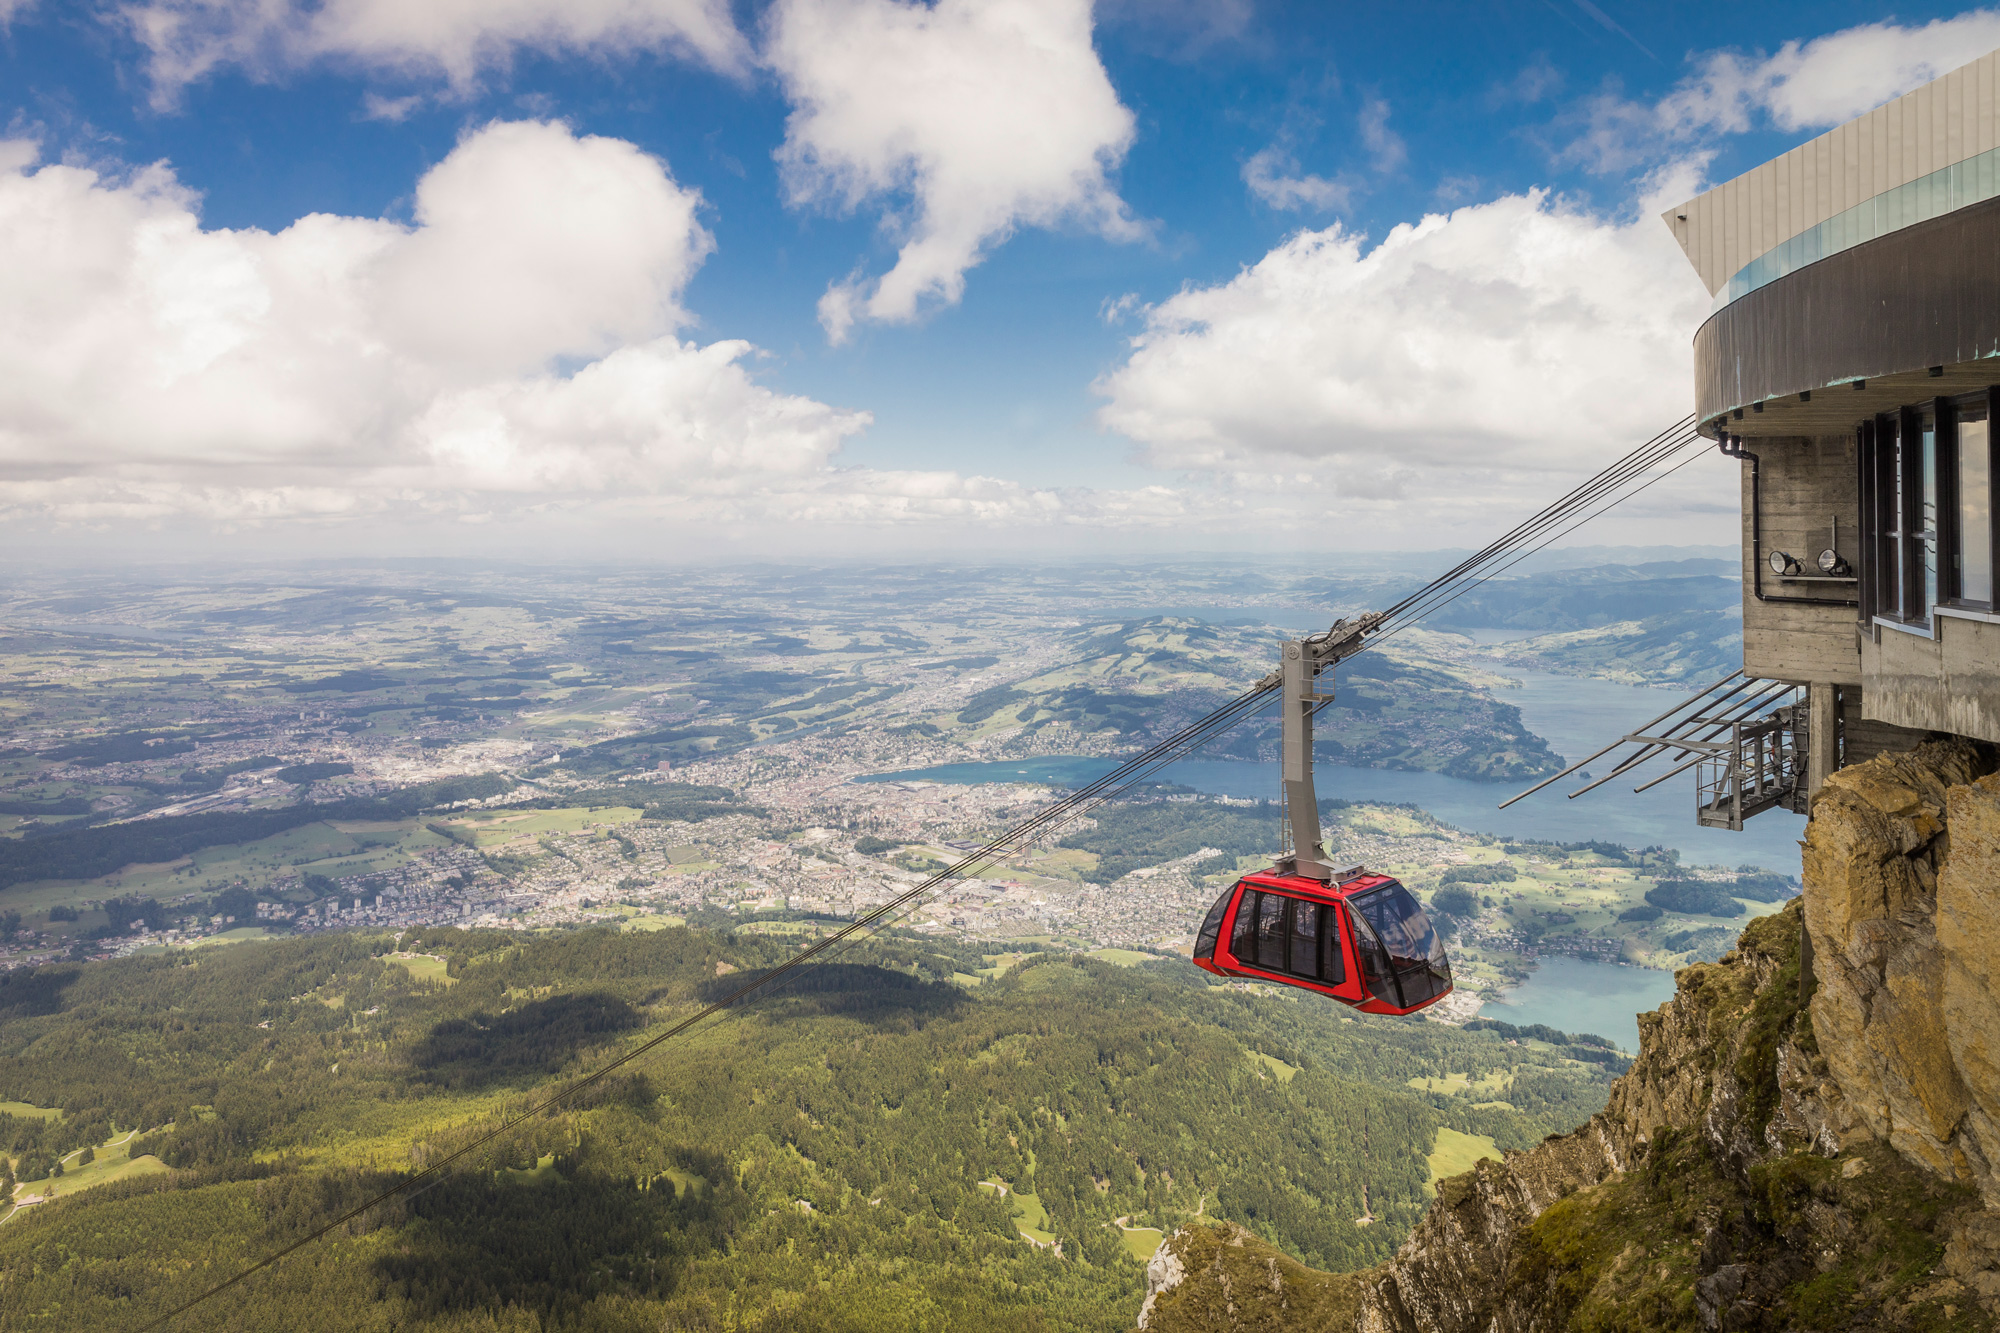 Pilatus Dragon Ride